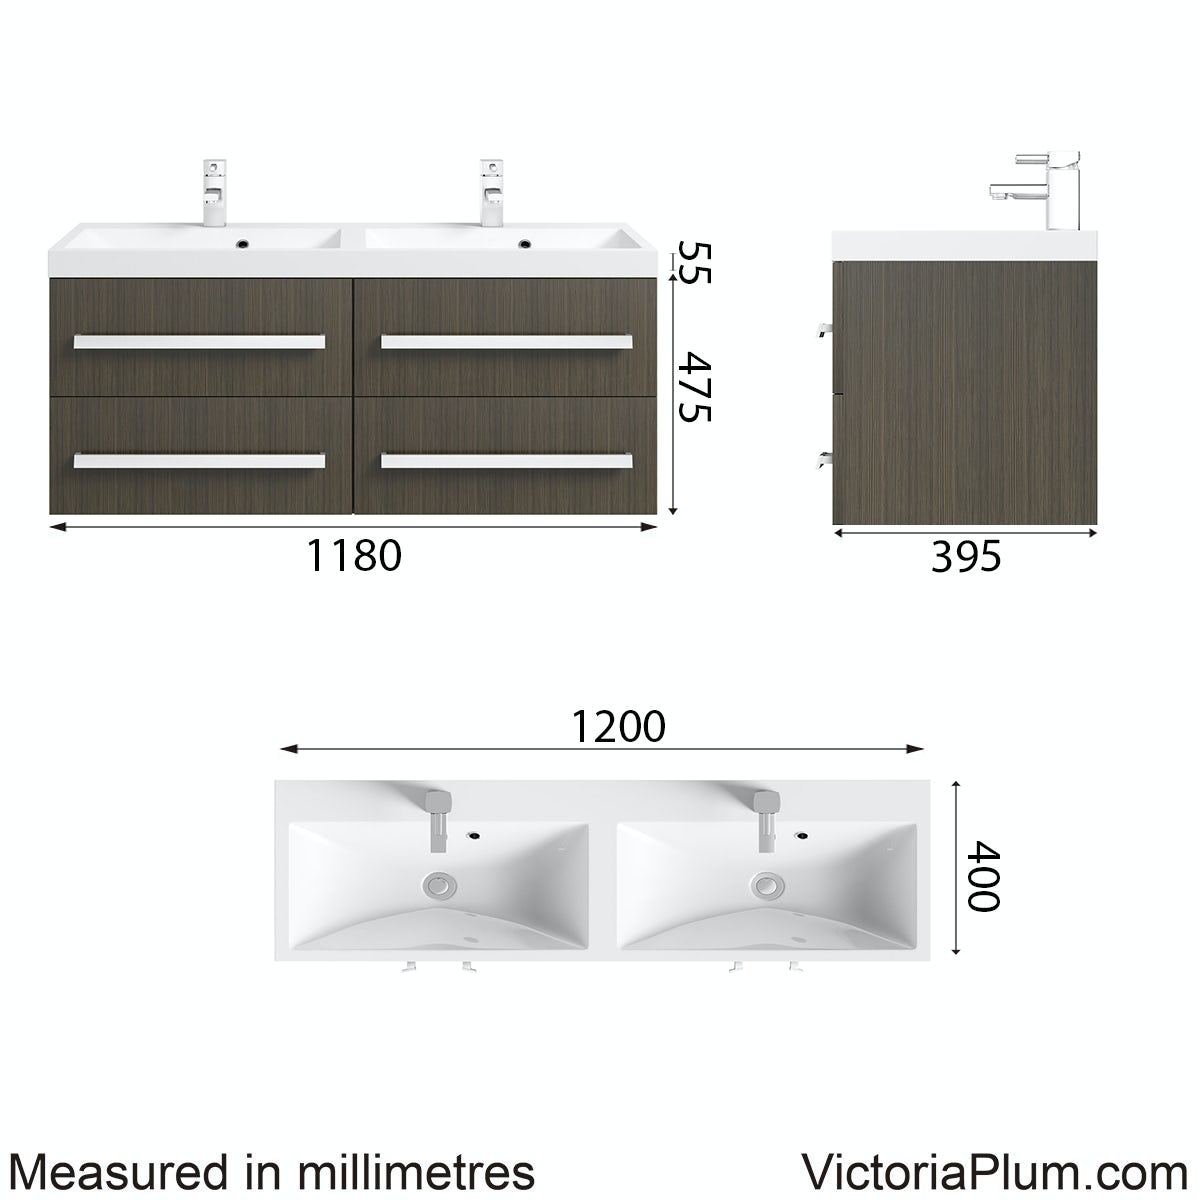 Dimensions for Orchard Wye walnut wall hung double basin unit 1200mm